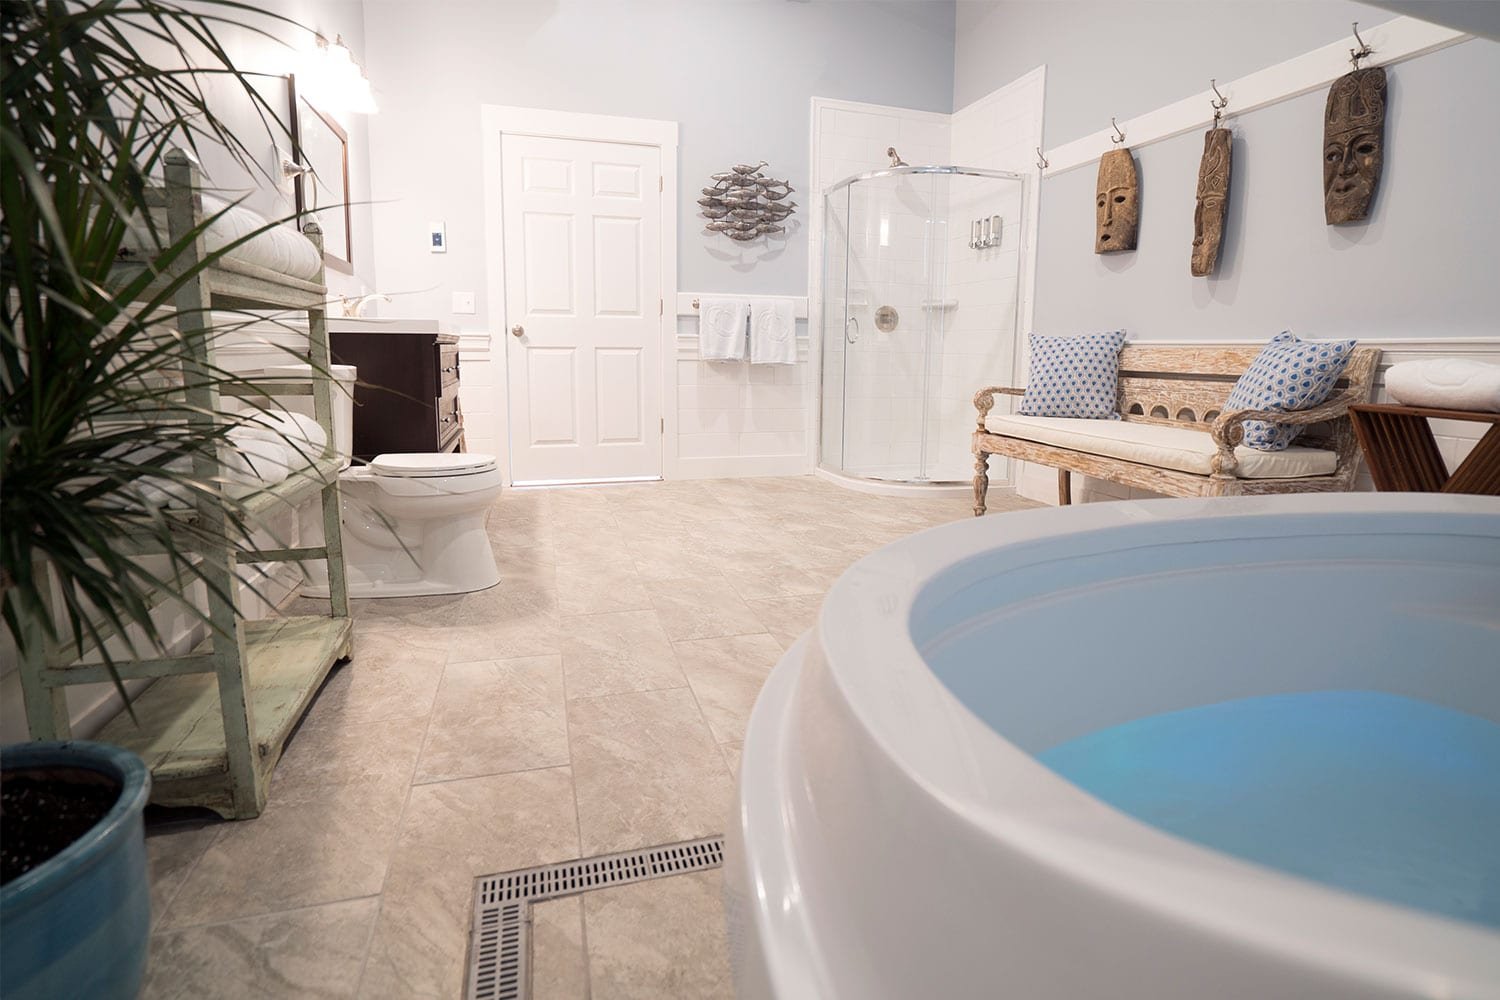 Therapeutic Float Spa Foundation House Sober Living Facility In